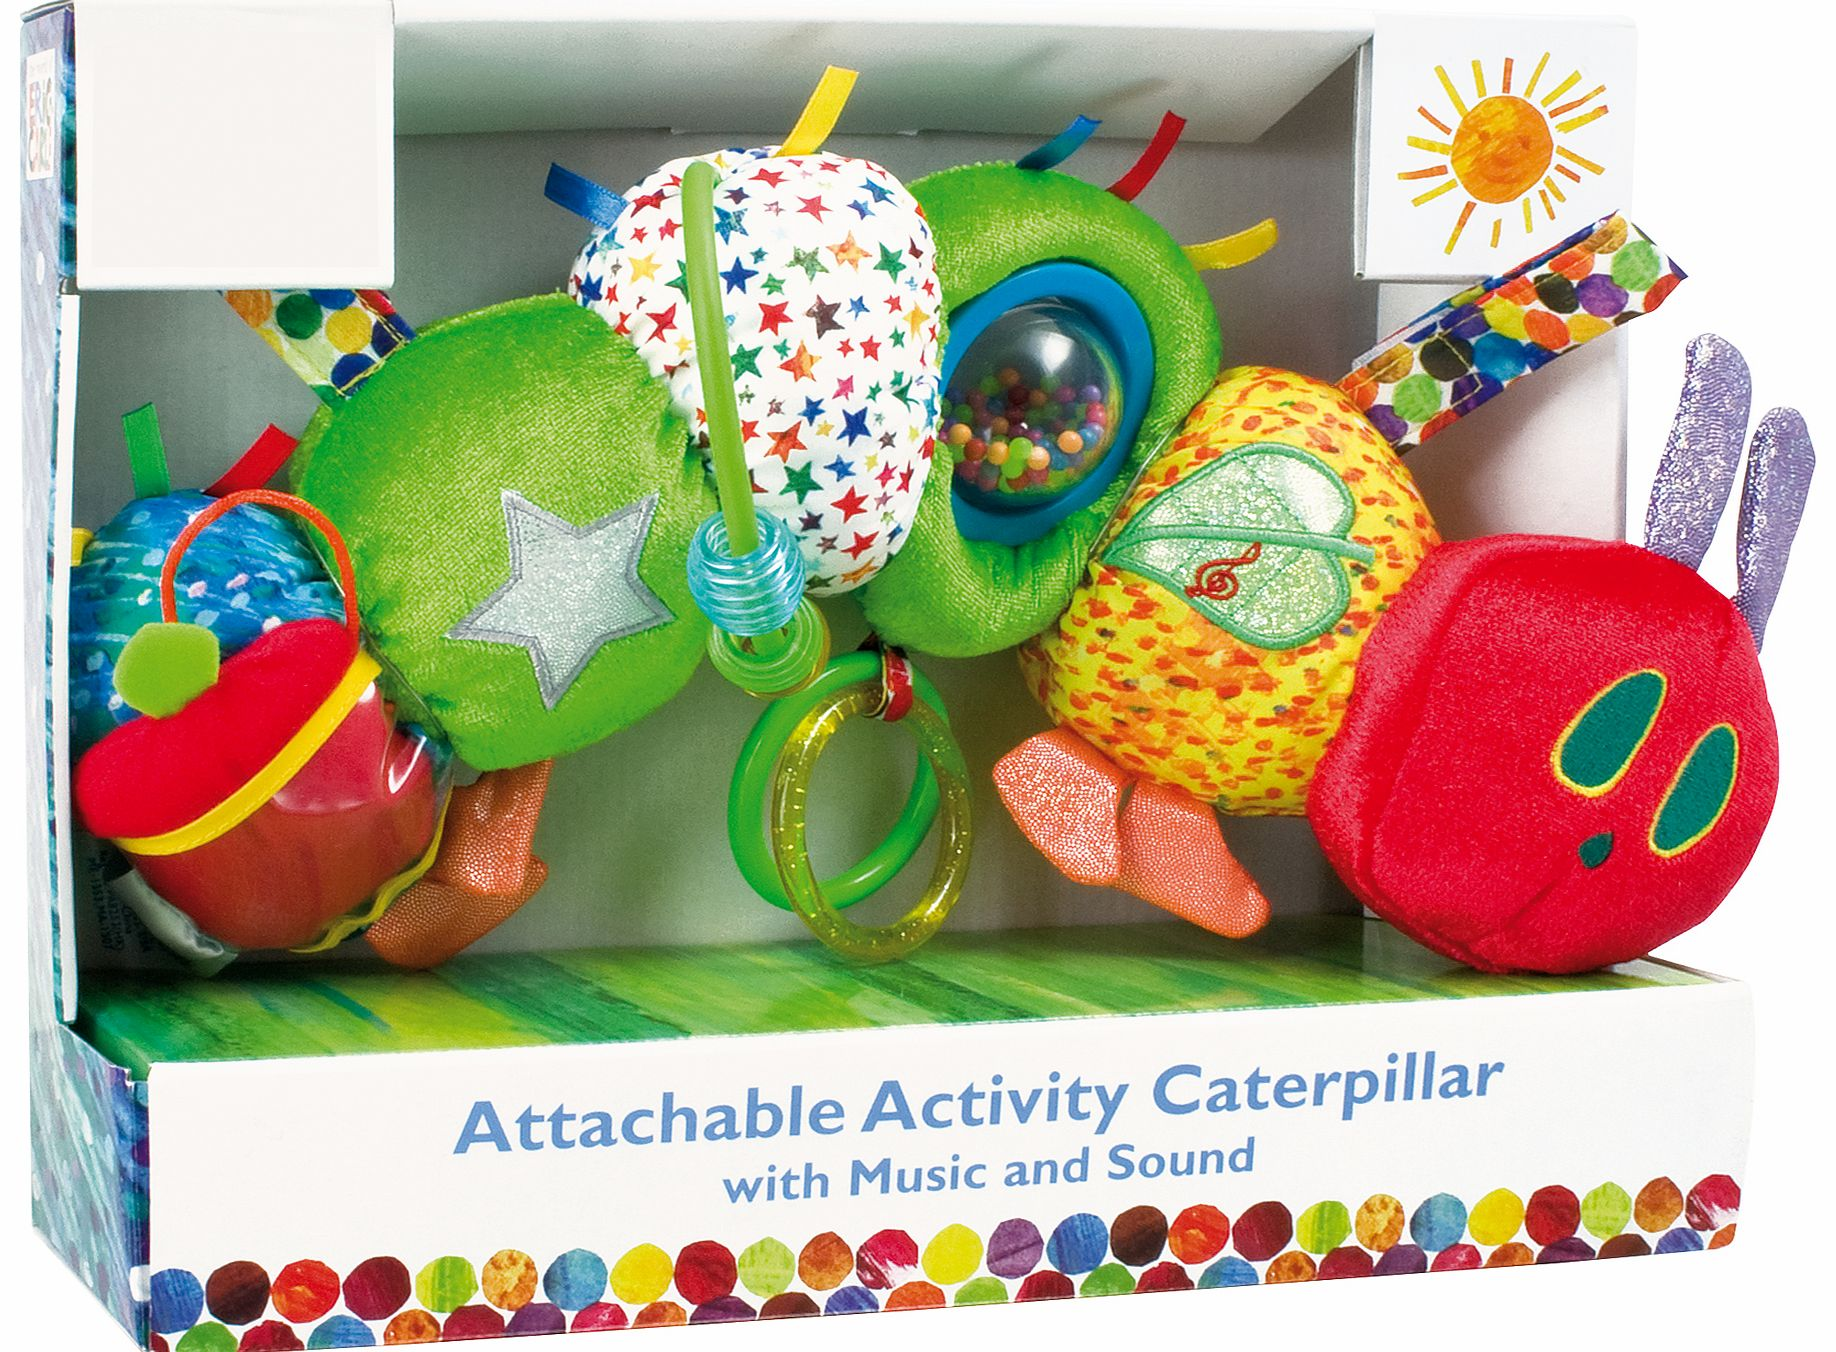 The Very Hungry Activity Caterpillar